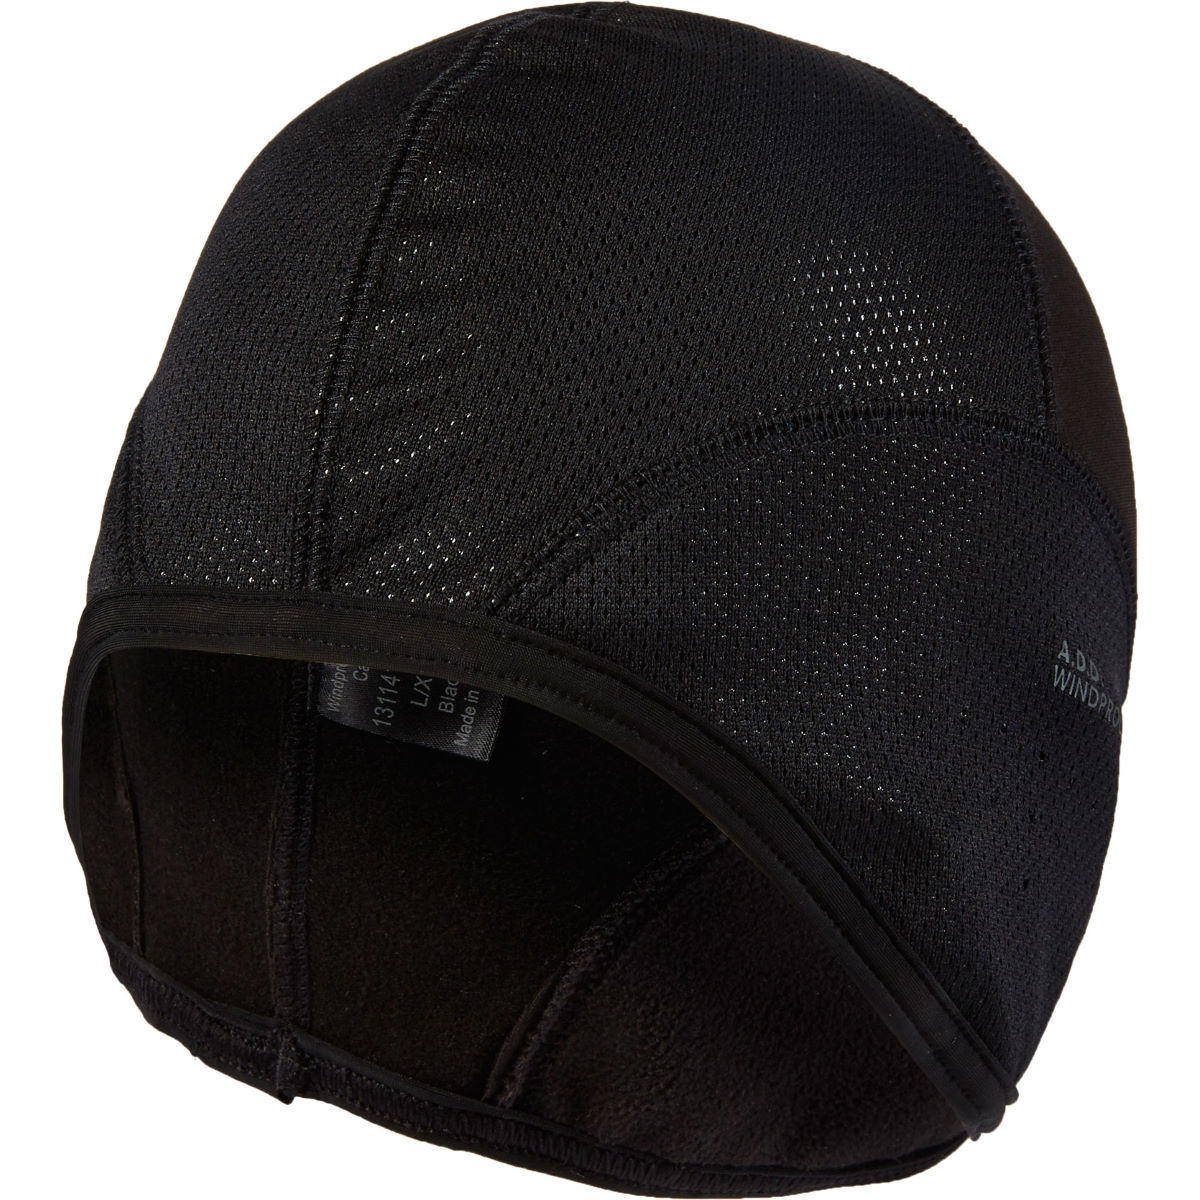 Bonnet SealSkinz Coupe-vent - L/XL Noir